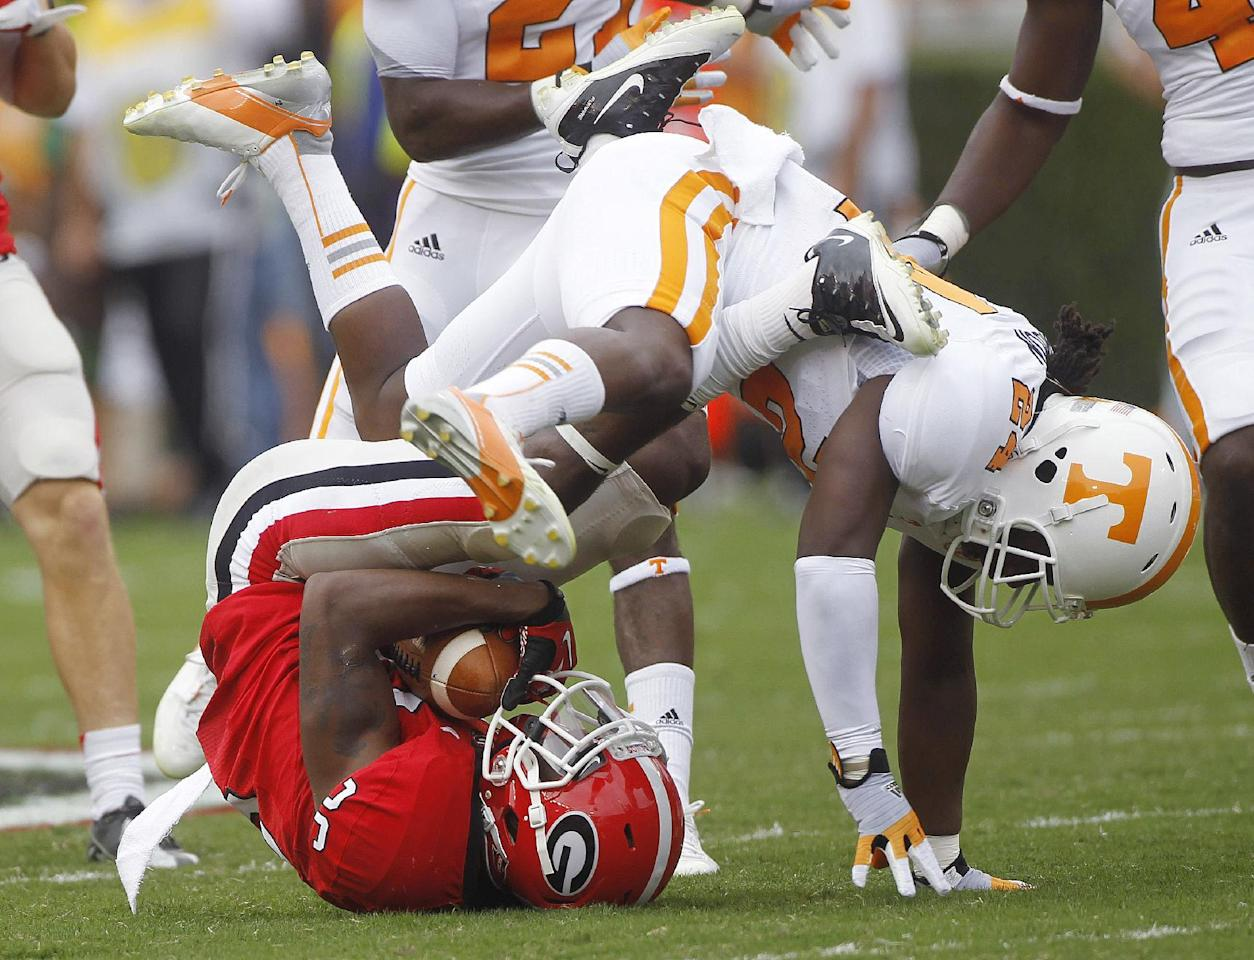 Georgia's Malcolm Mitchell (26) is tackled by Tennessee's Eric Gordon (24) as he fields a punt in the first half of an NCAA college football game in Athens, Ga., on Saturday, Sept. 29, 2012. (AP Photo/John Bazemore)